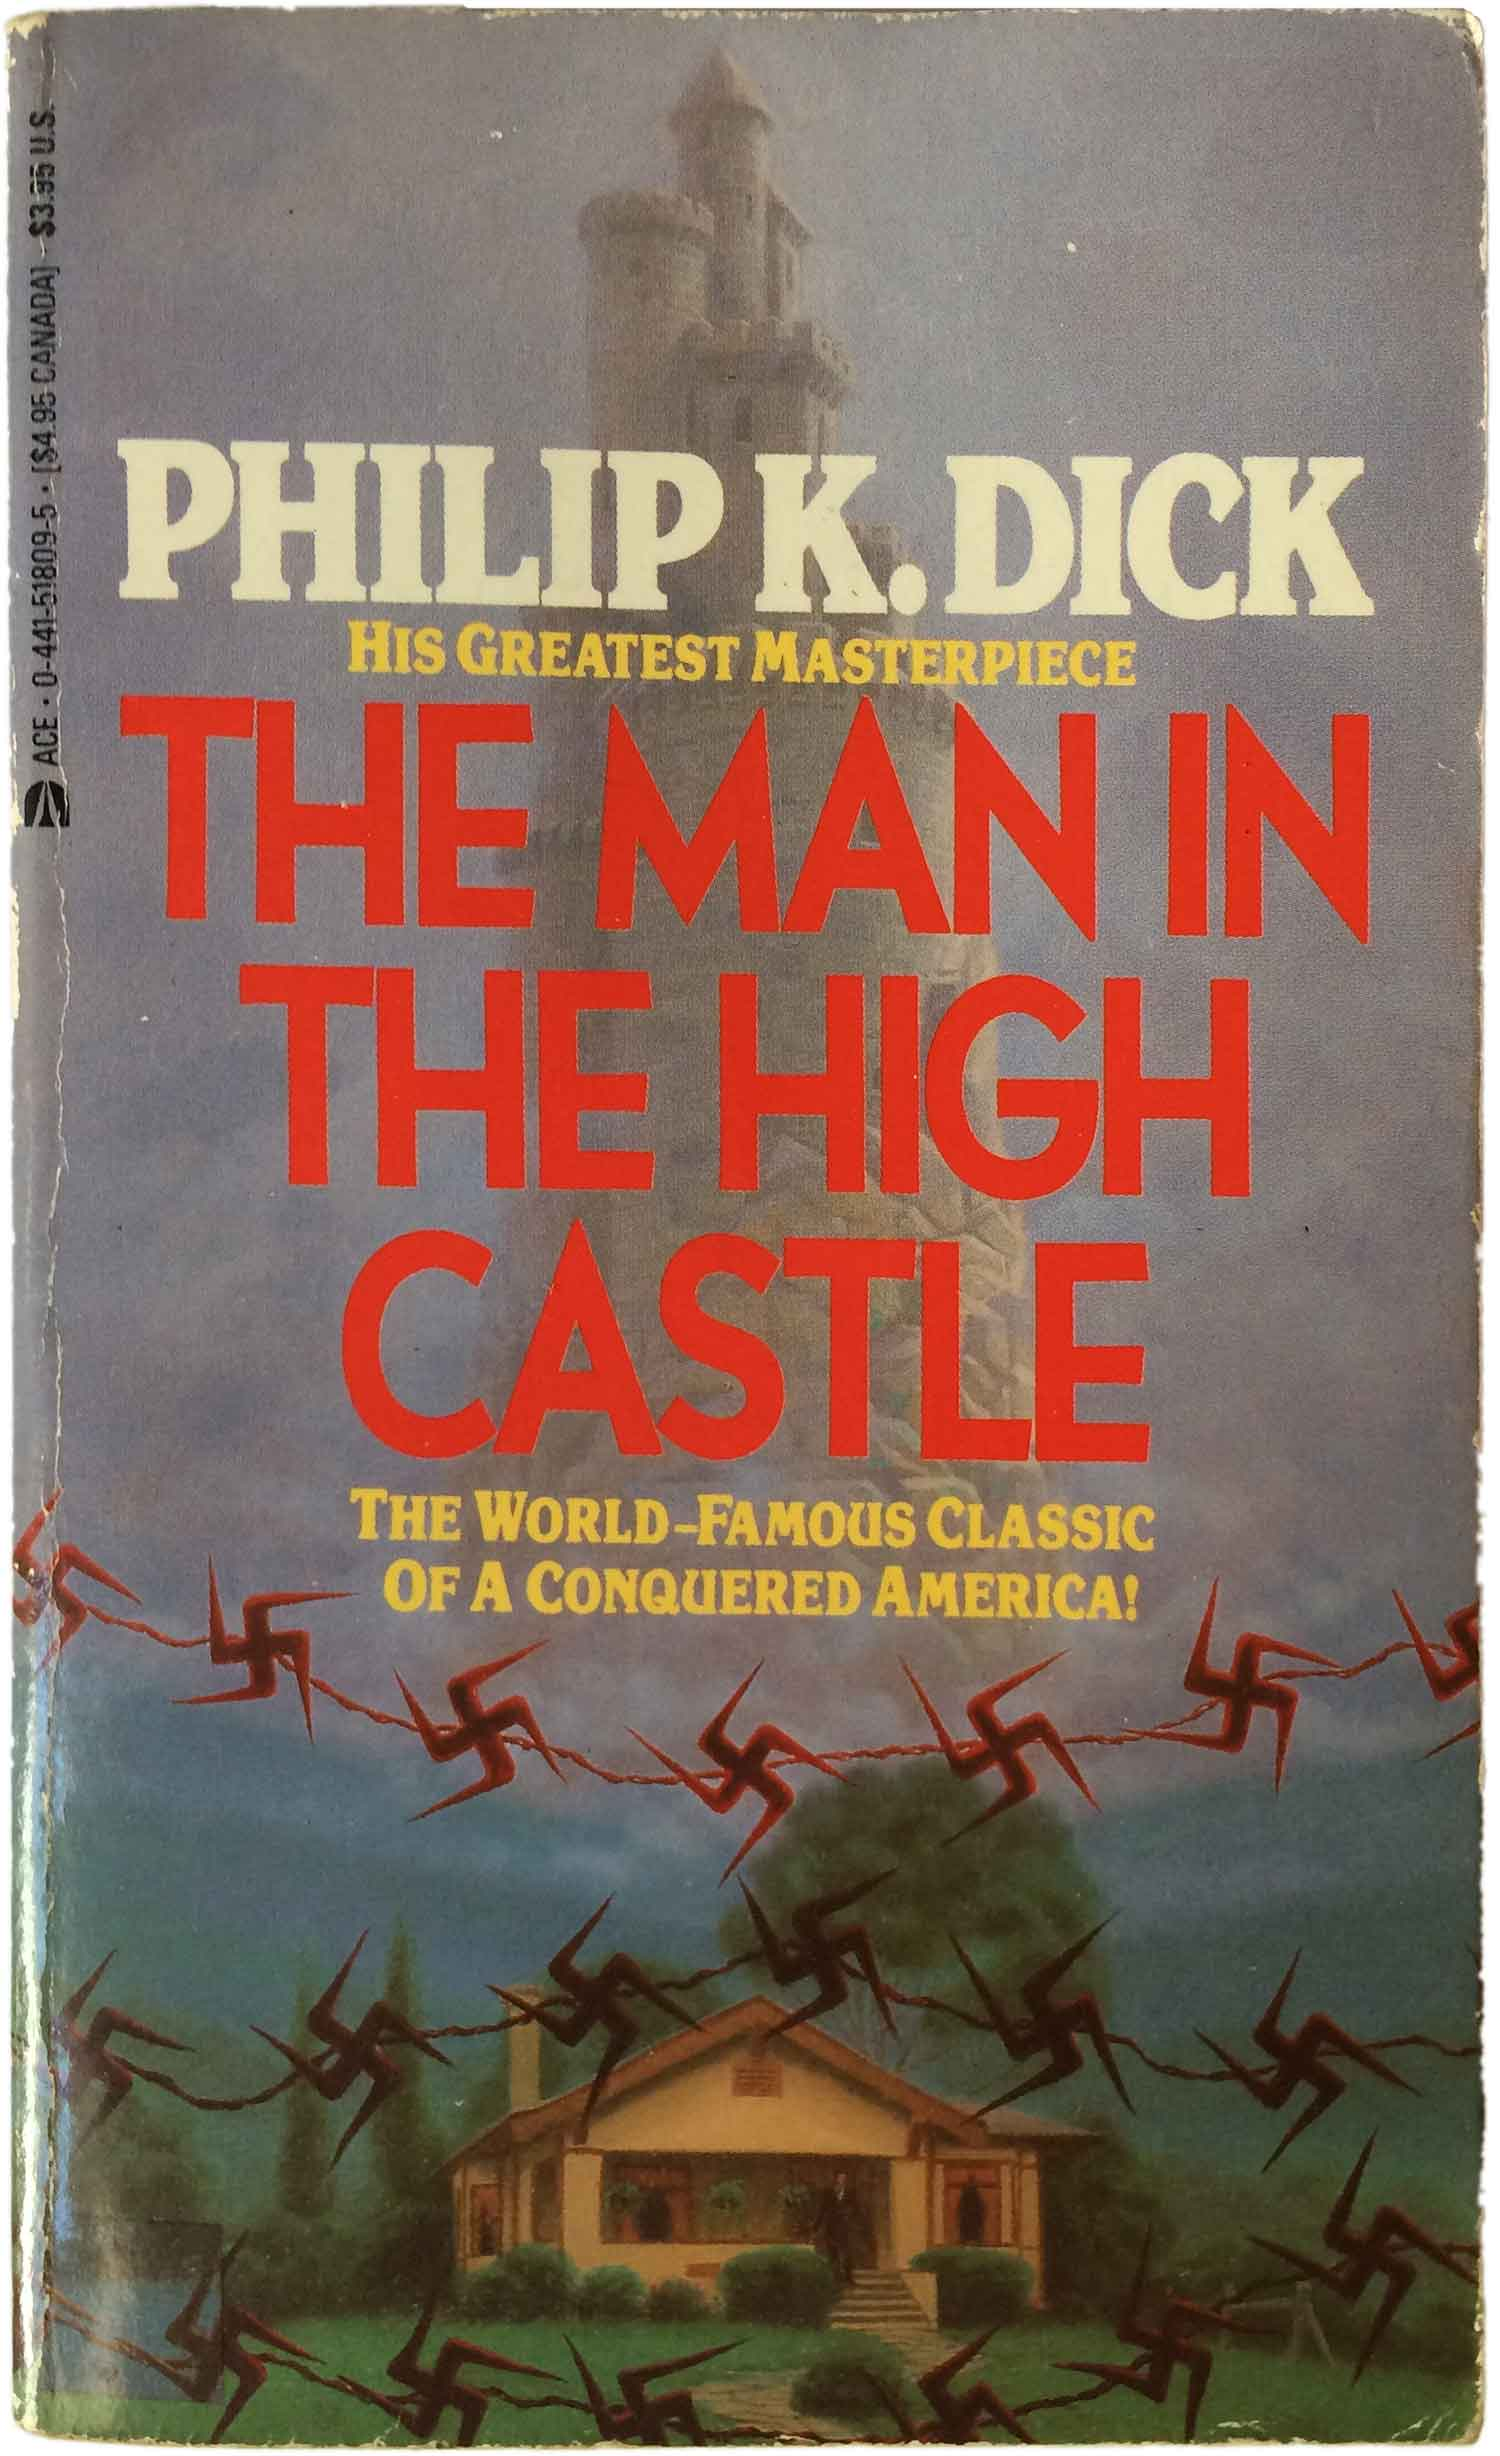 pkd_manhighcastle_ace